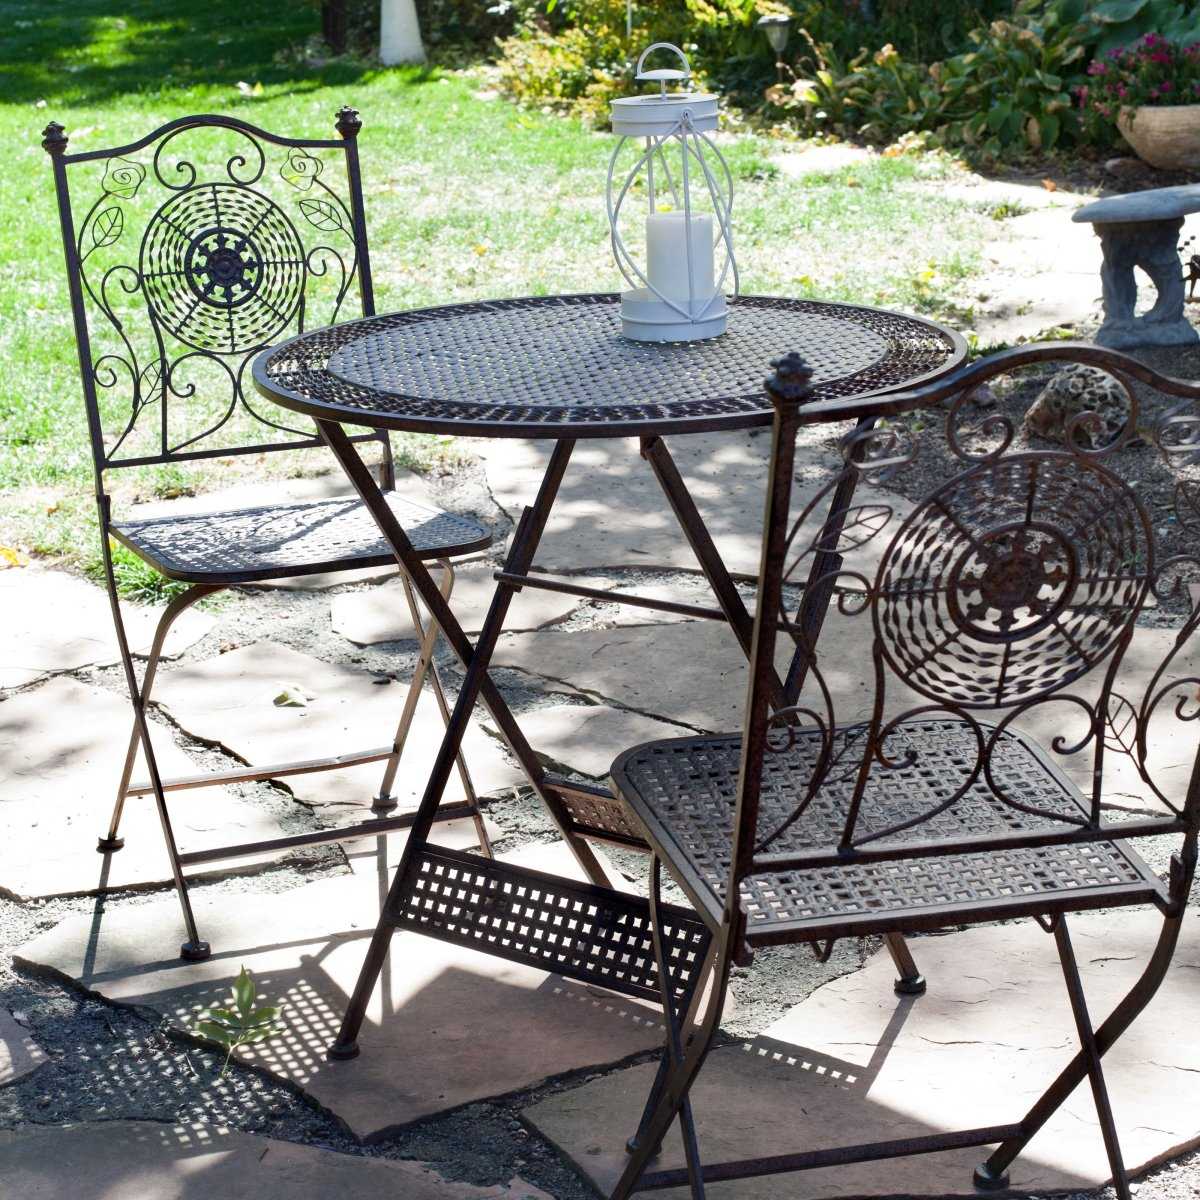 Garden Furniture 3 Piece creativeworks home decor - patio furniture sets